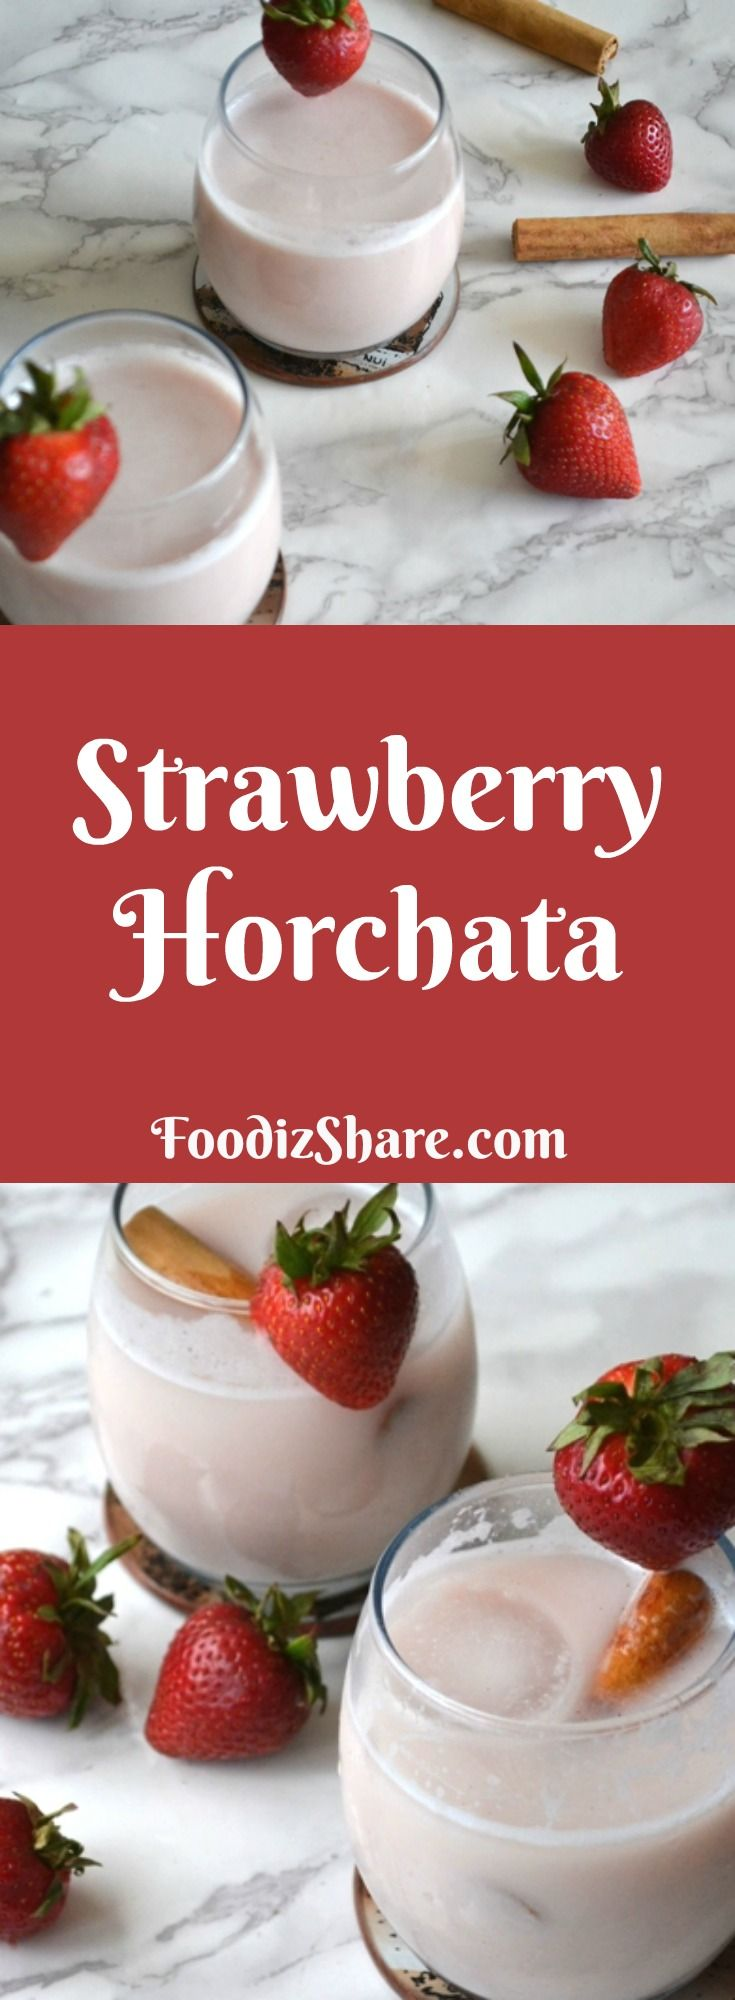 Horchata, a non-dairy beverage very popular in Latin America, is traditionally made by grinding rice and nuts into milk. This recipe is for a fruit horchata. #recipes #dairyfree #beverage #Healthy